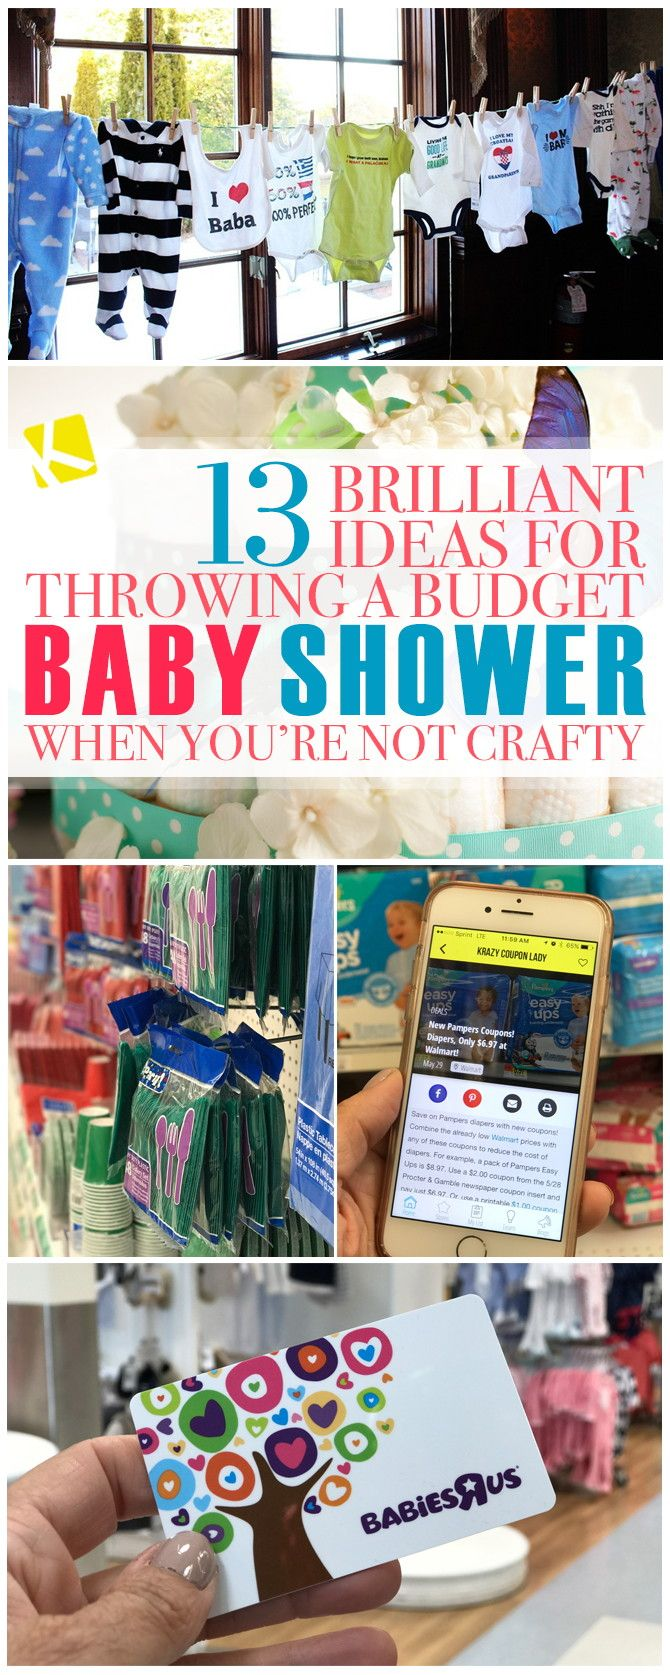 244 best knockout knockoffs images on pinterest saving money 12 brilliant ideas for throwing a budget baby shower when you re not crafty